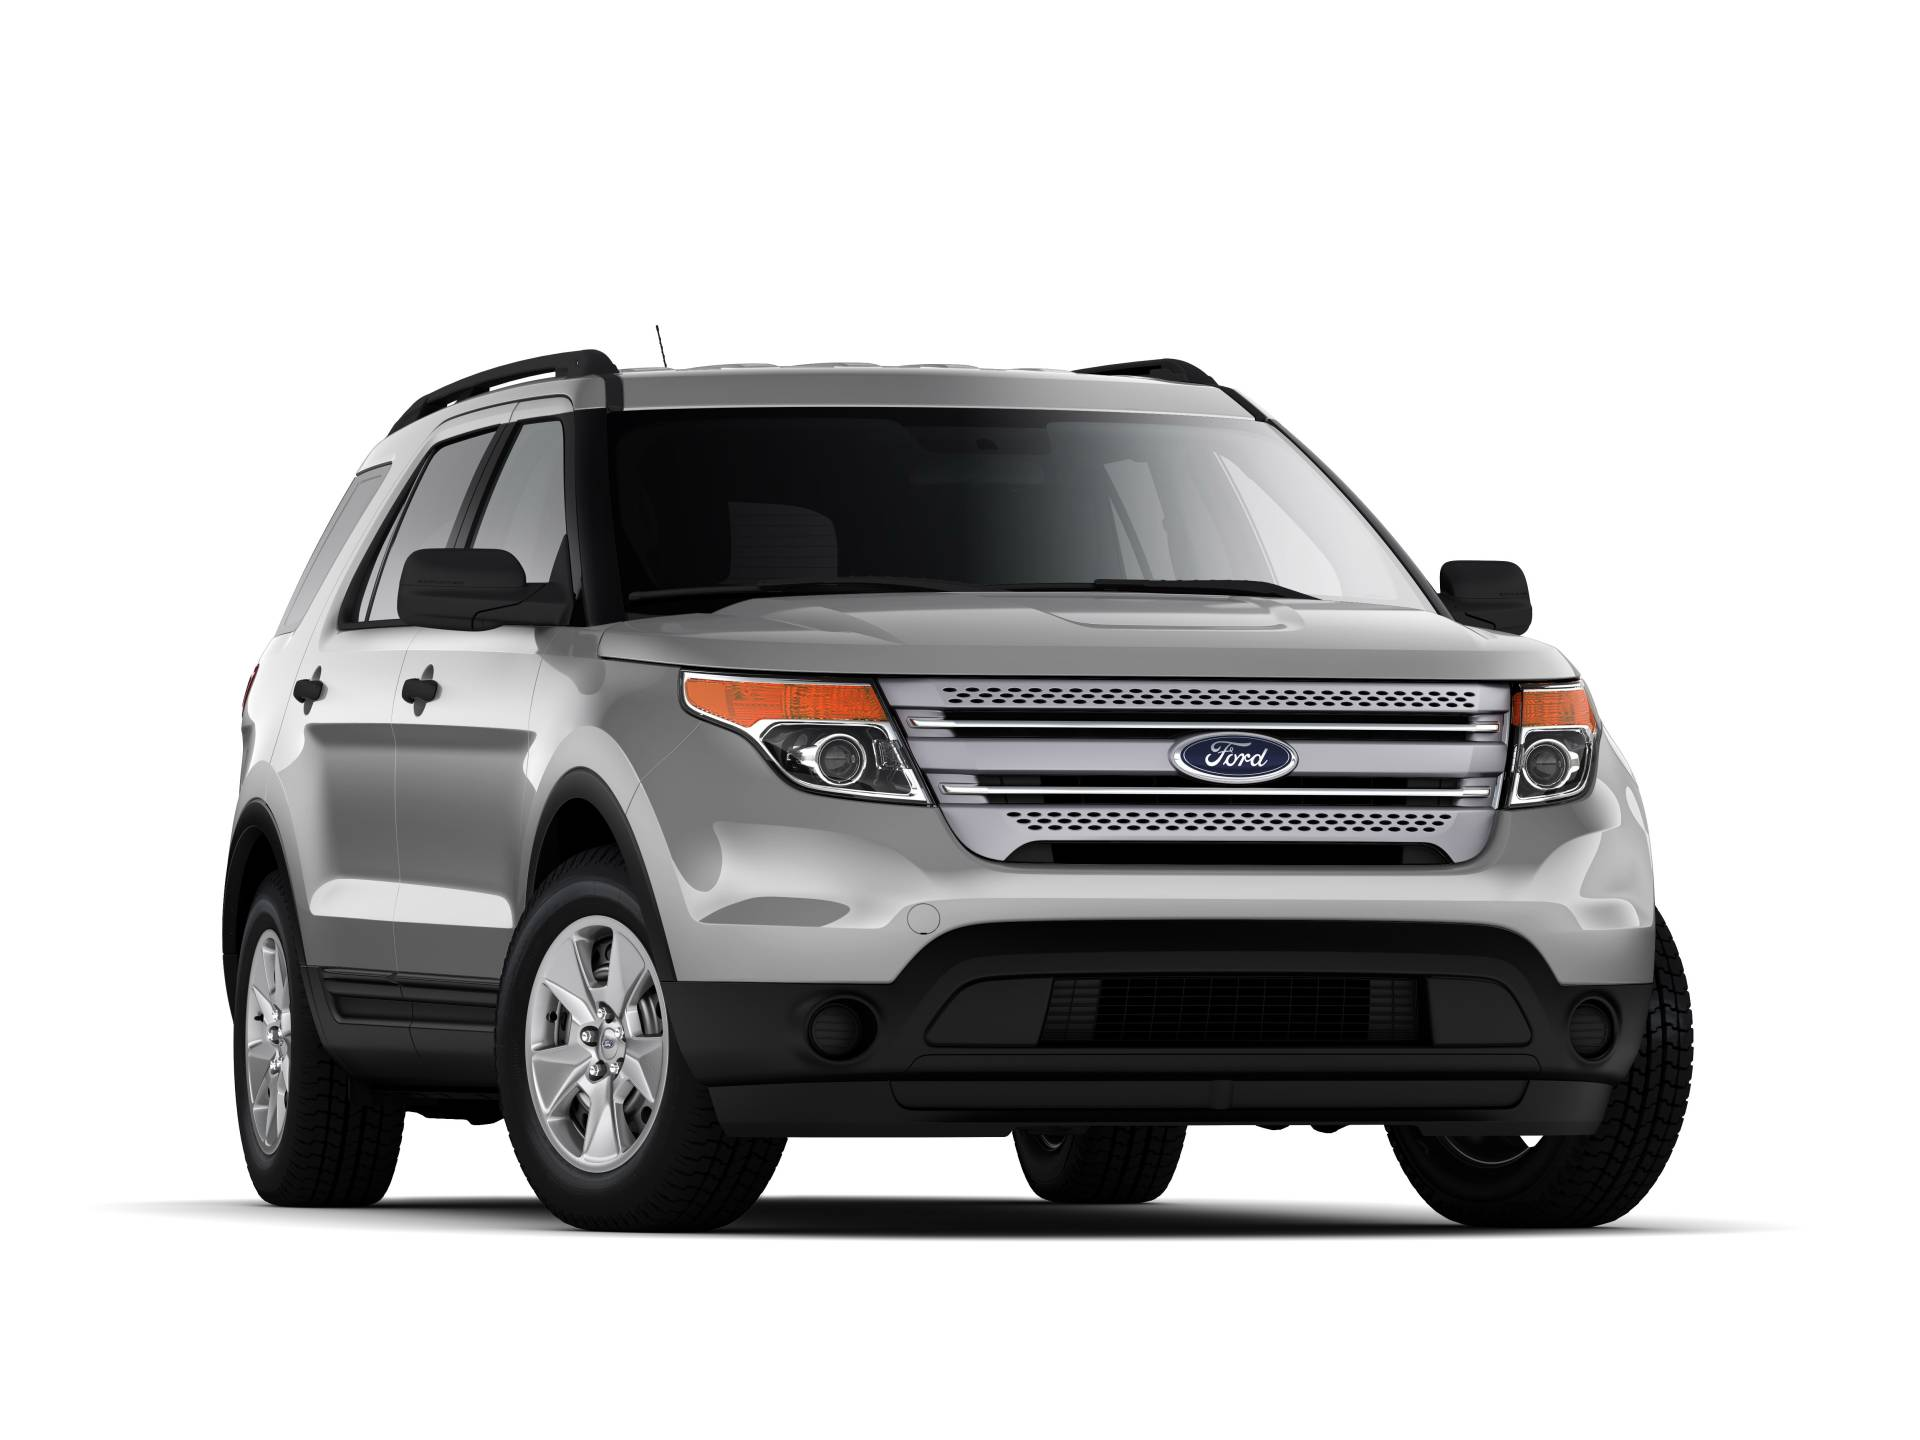 2017 ford explorer sport forum car release date price autos post. Black Bedroom Furniture Sets. Home Design Ideas